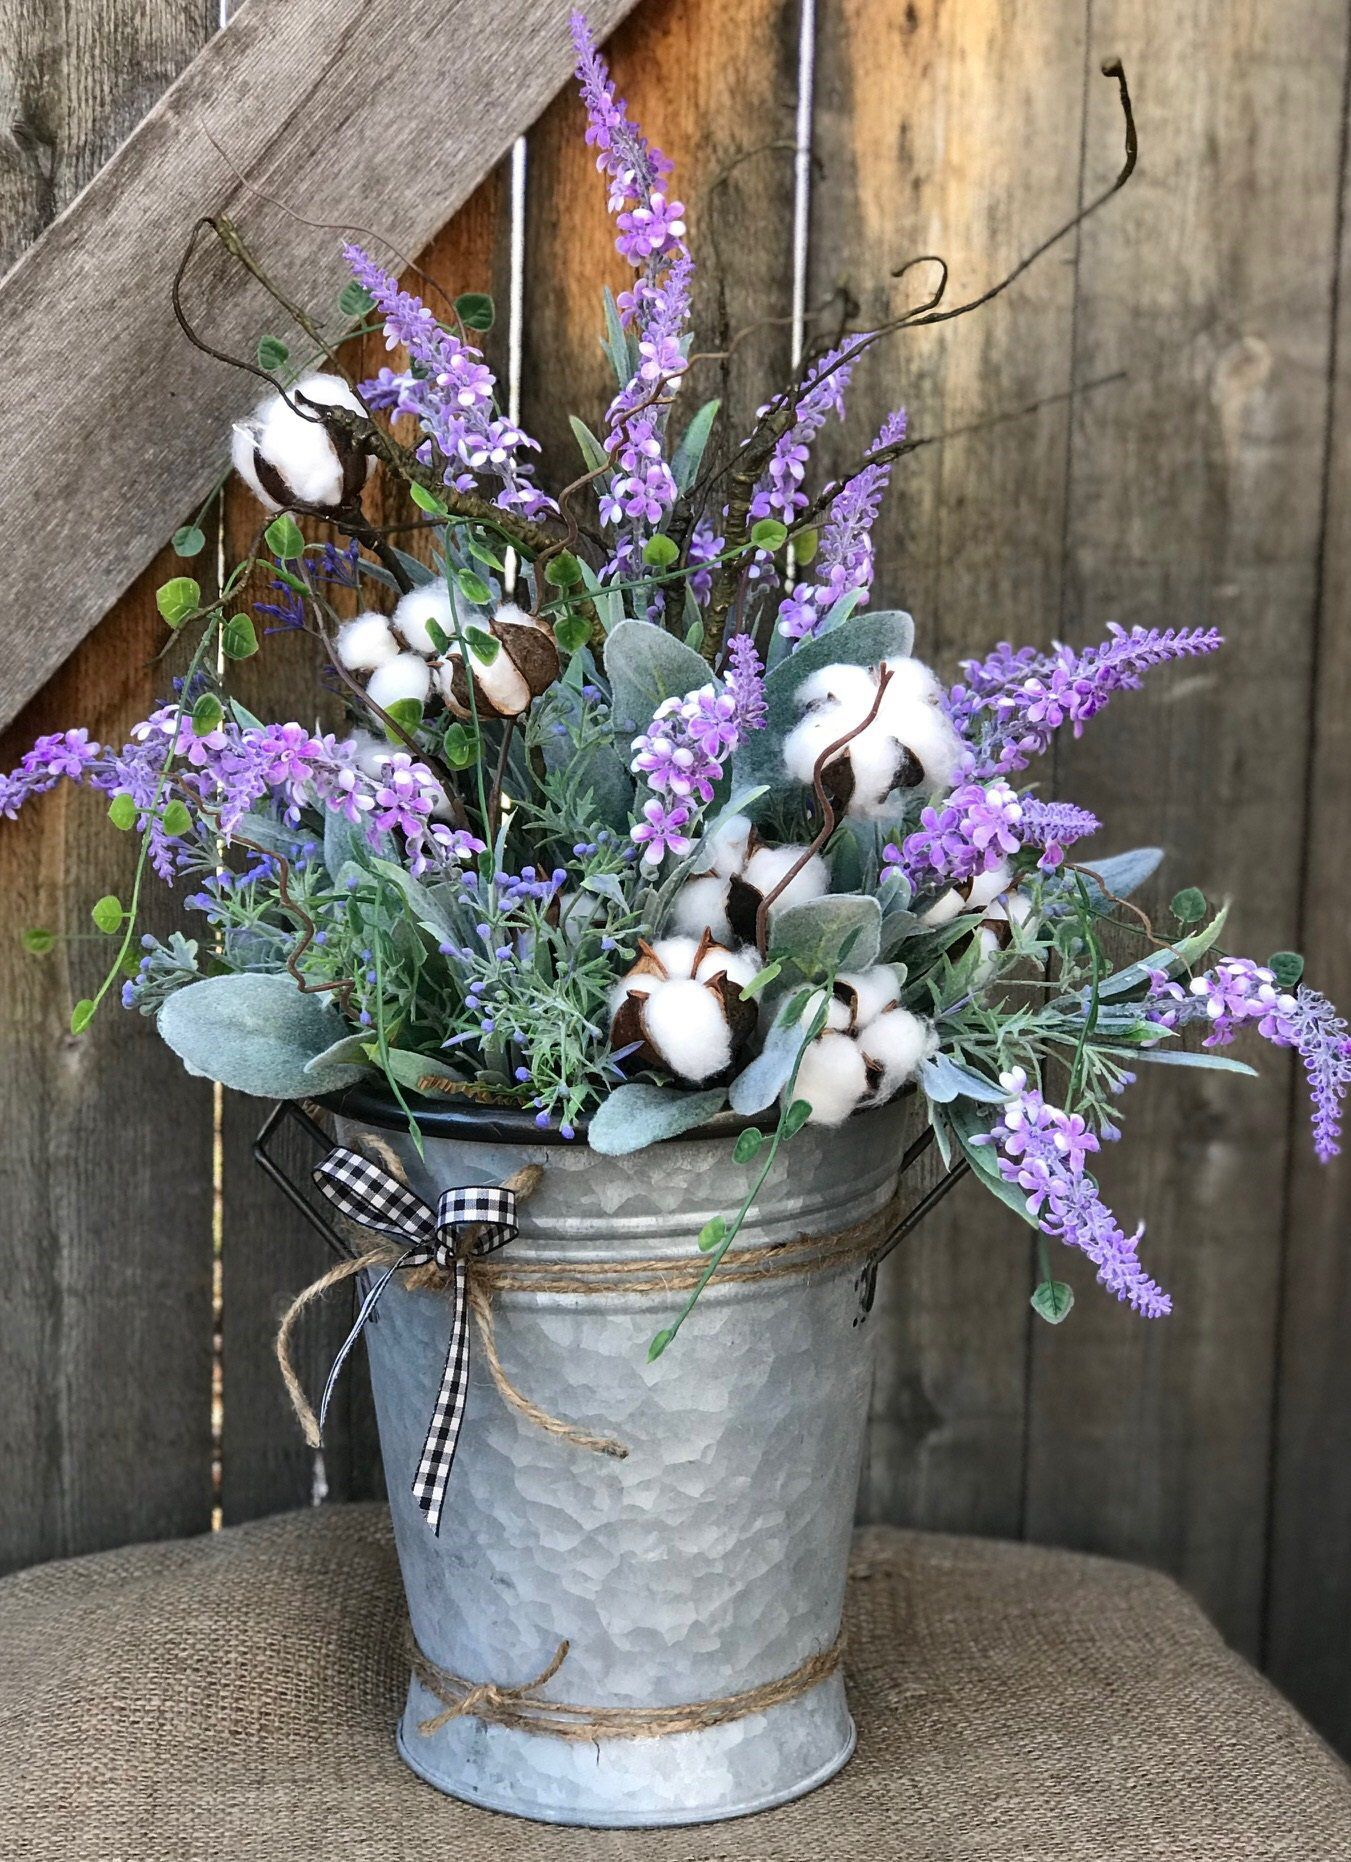 Cotton And Lavender Floral Arrangement So Pretty And Soft You Can Almost Smell It With Images Flower Arrangements Floral Arrangements Flowers